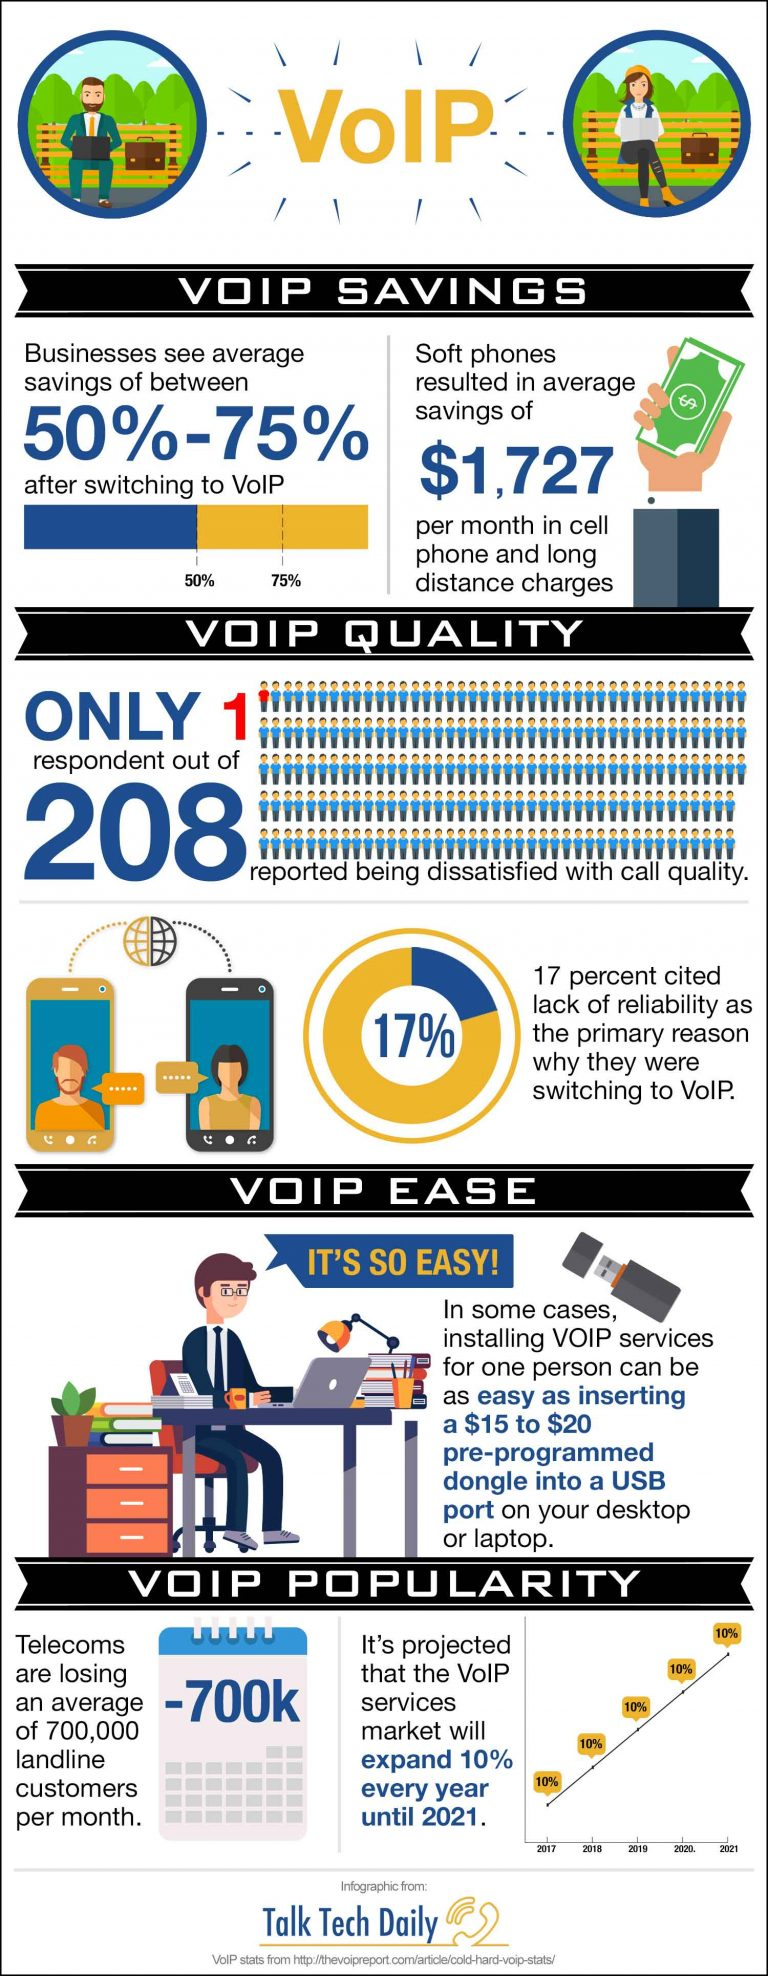 How a Voip can help you cut costs at the salon?-Cutting costs for home-based salons and spas